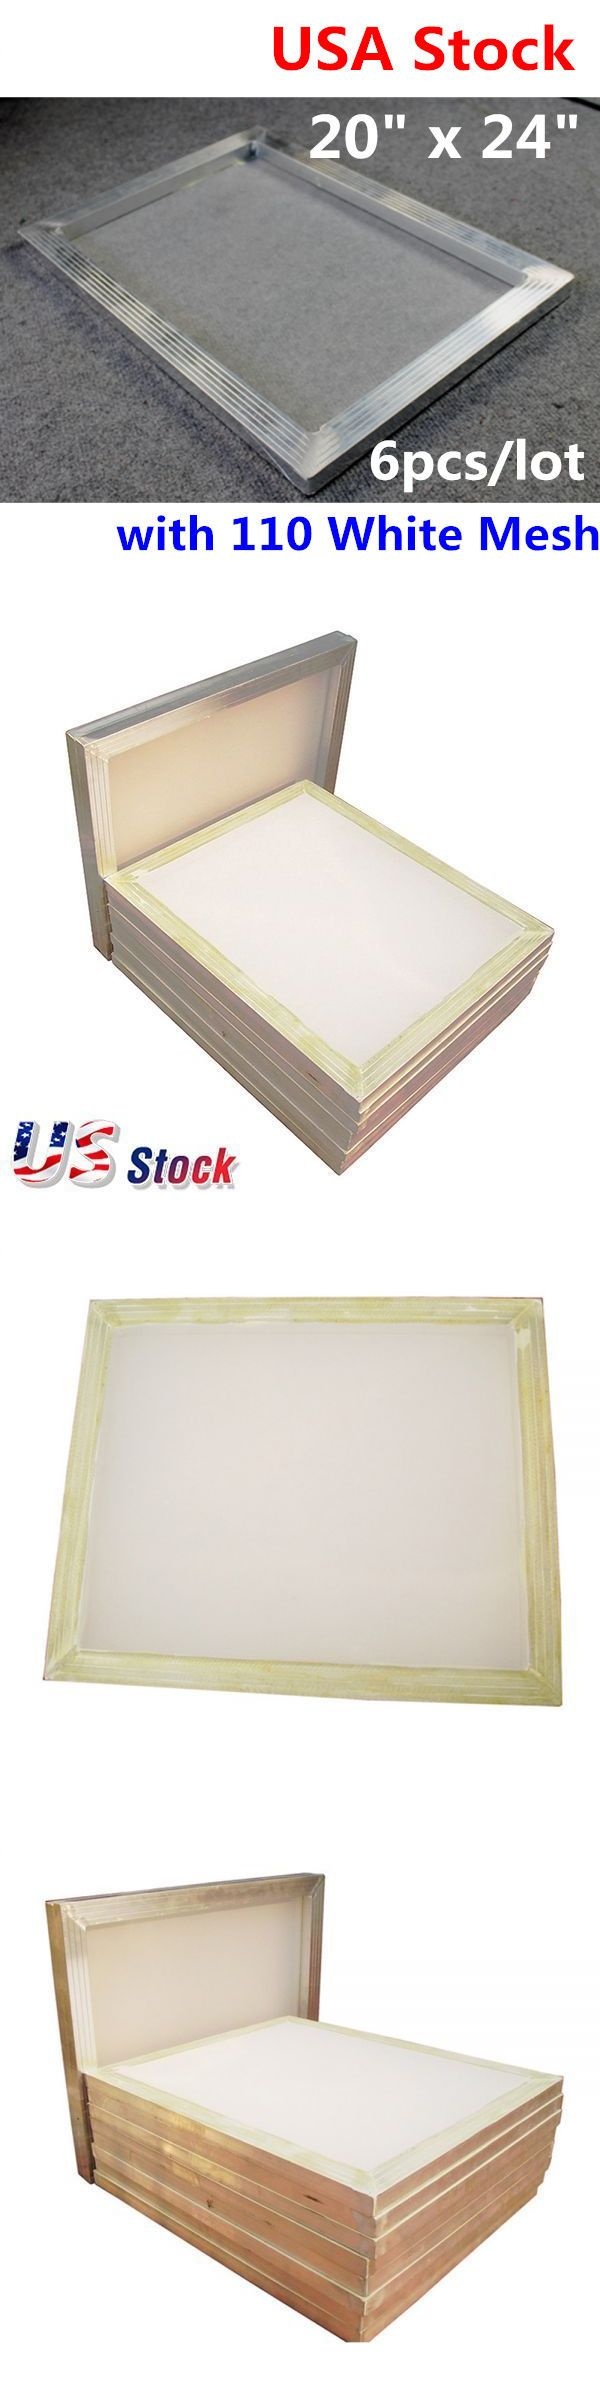 Screen Printing Frames 183114: Us Stock-6 Pcs - 20X24 Inch Aluminum Screen With 110 White Mesh -> BUY IT NOW ONLY: $83.66 on eBay!